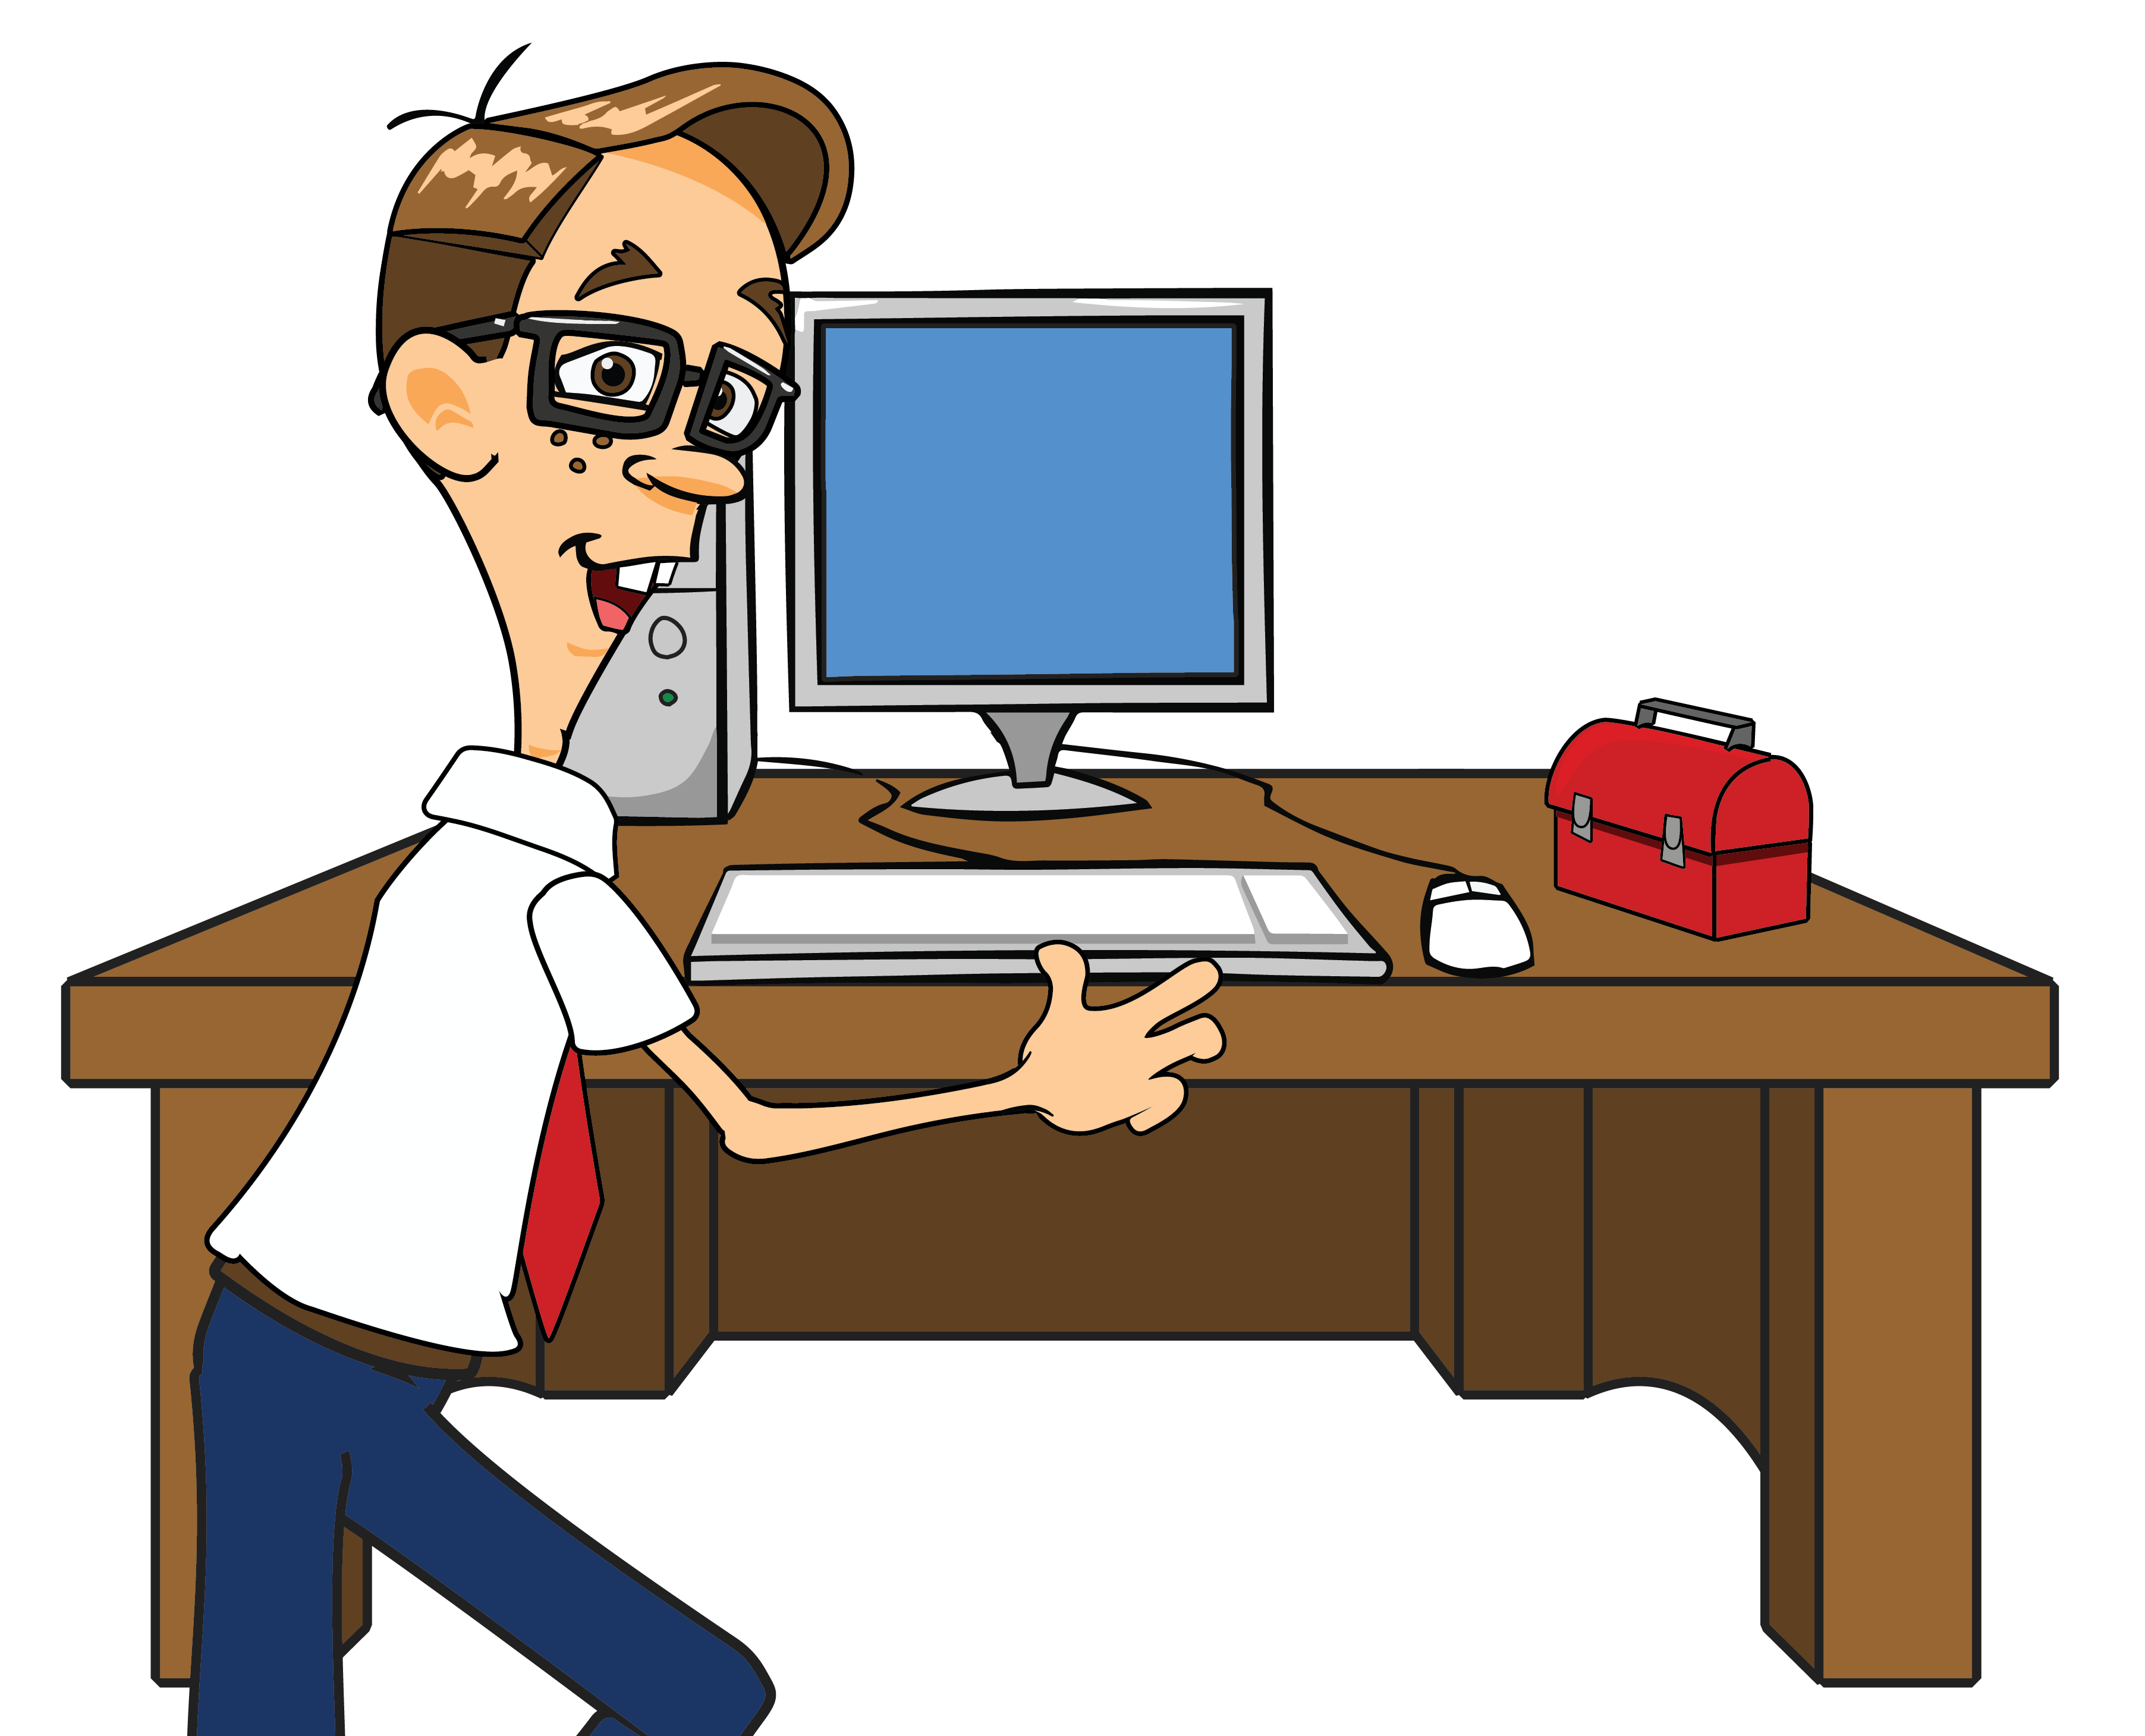 Computer repair picture free. Telephone clipart desk job